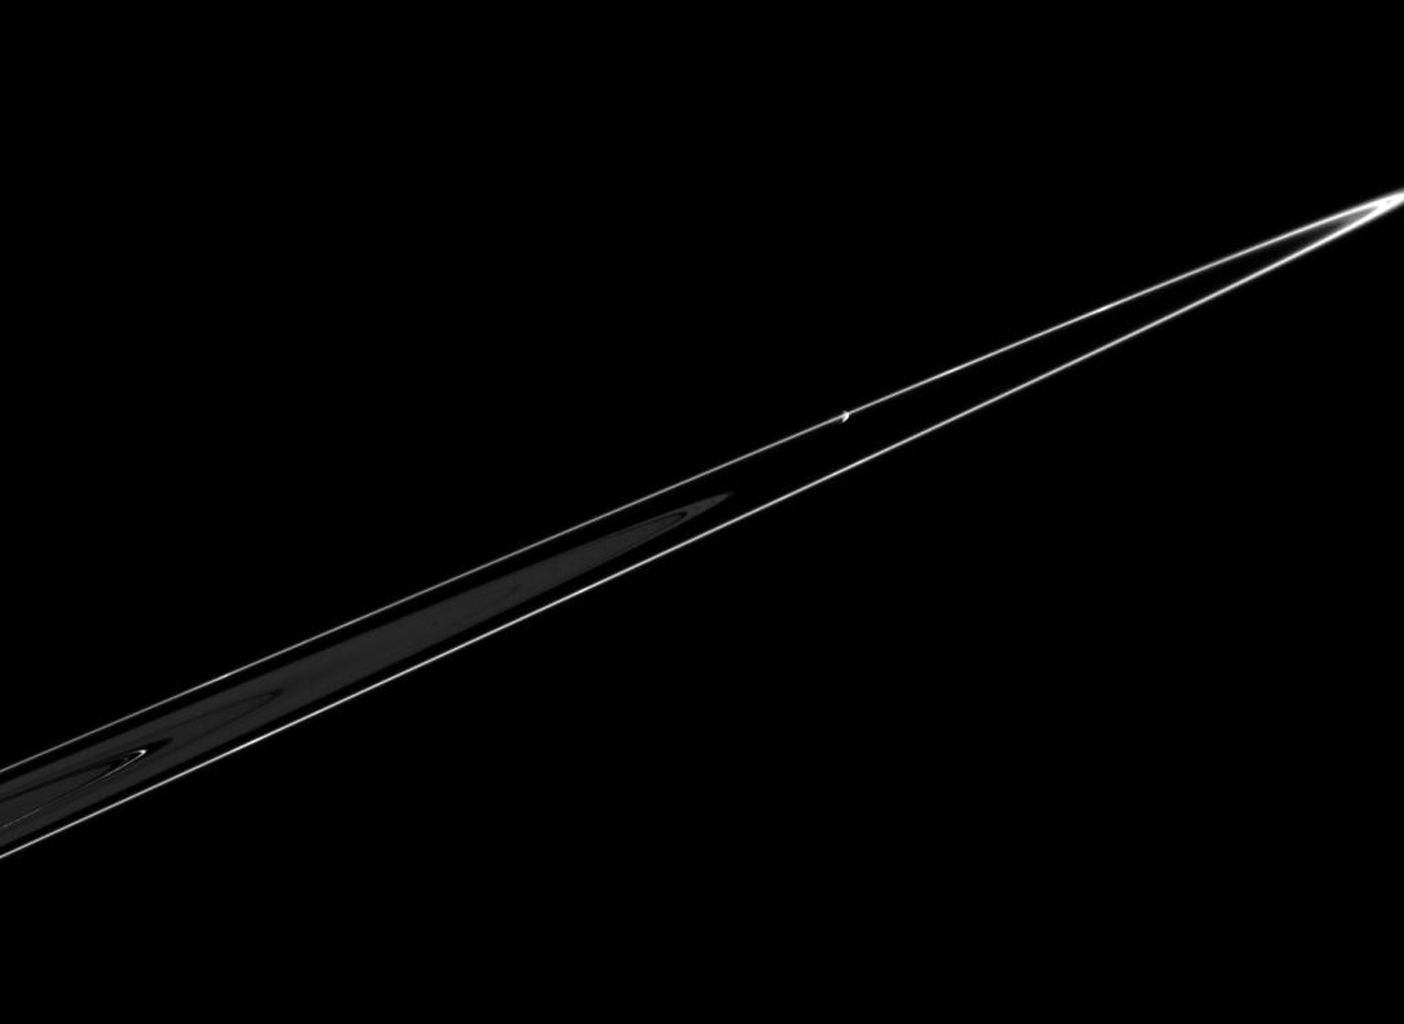 Pandora is seen in this dramatic view, orbiting just beyond the outer edge of Saturn's F ring. This image was taken in visible light with NASA's Cassini spacecraft's narrow-angle camera on Feb. 18, 2005.